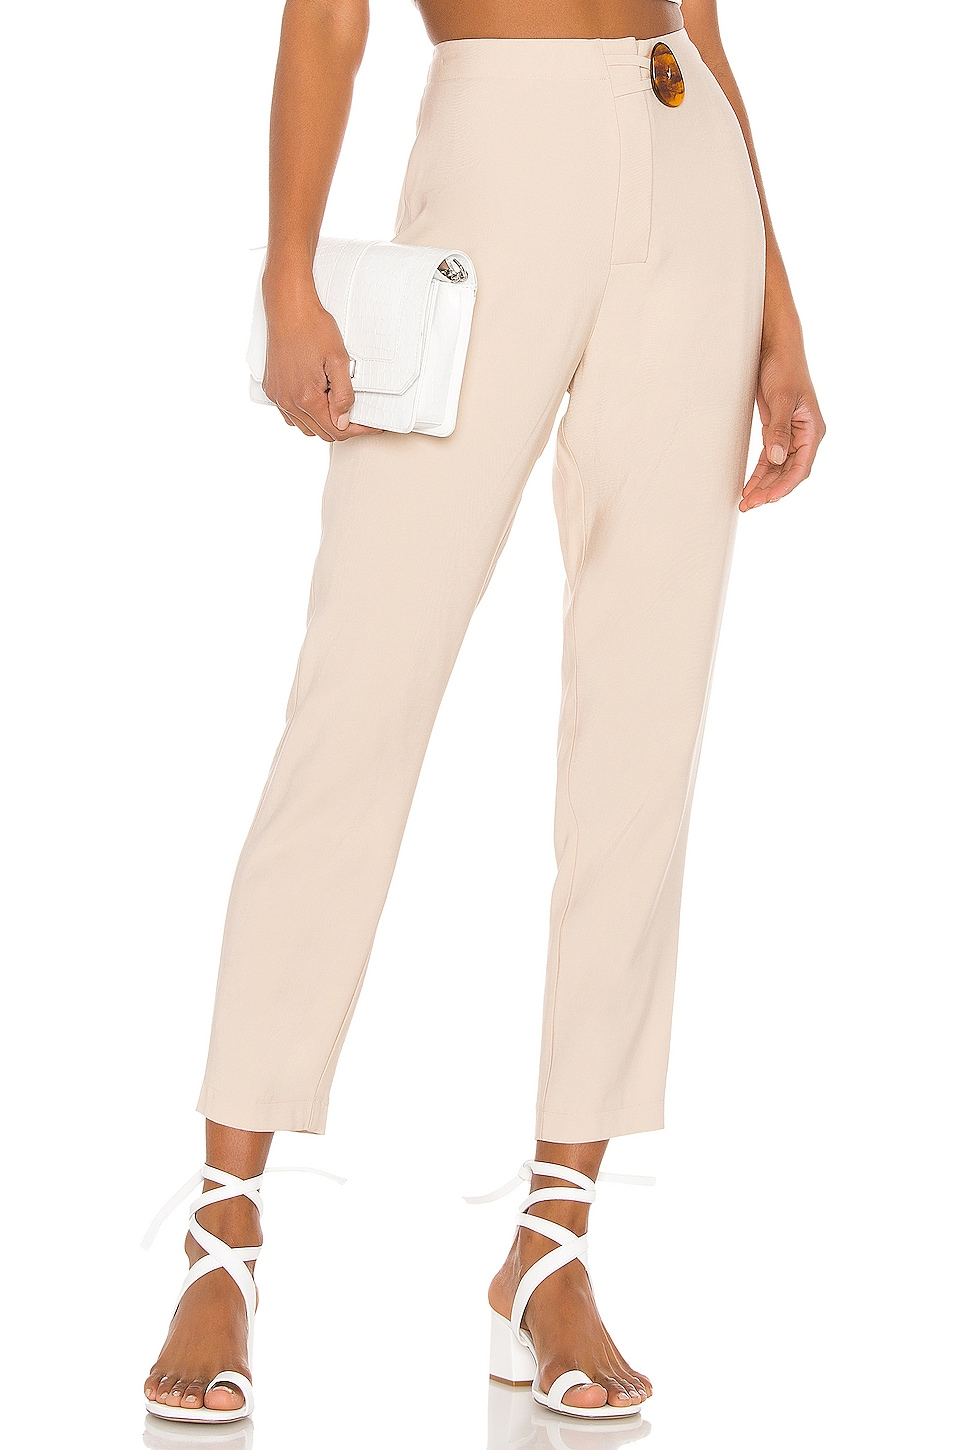 L'Academie The Nicole Pant in Sand